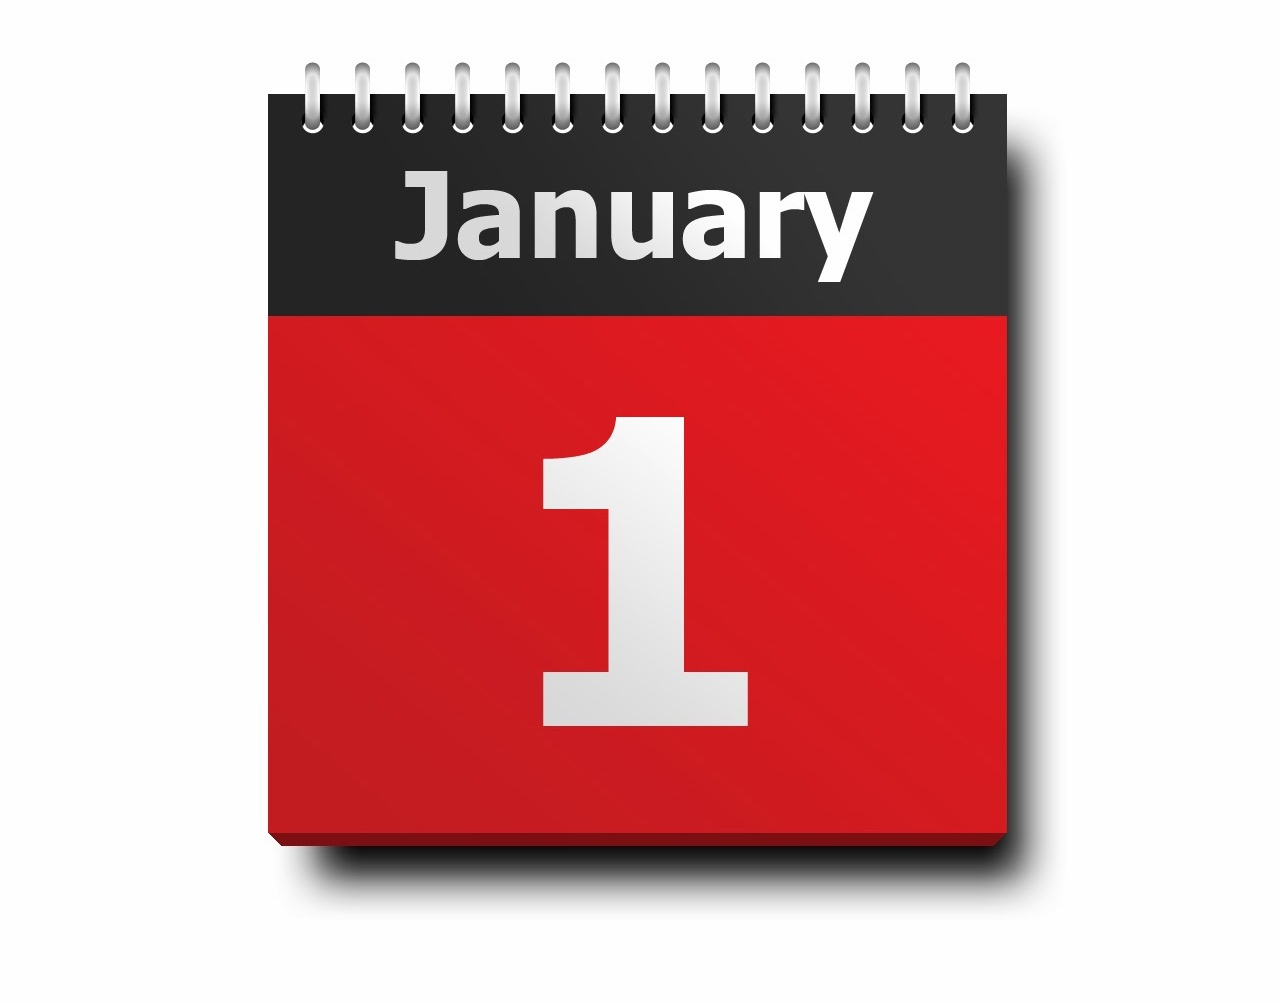 New-Year-is-celebrated-on-January-1-because-Julius-Caesar-said-so